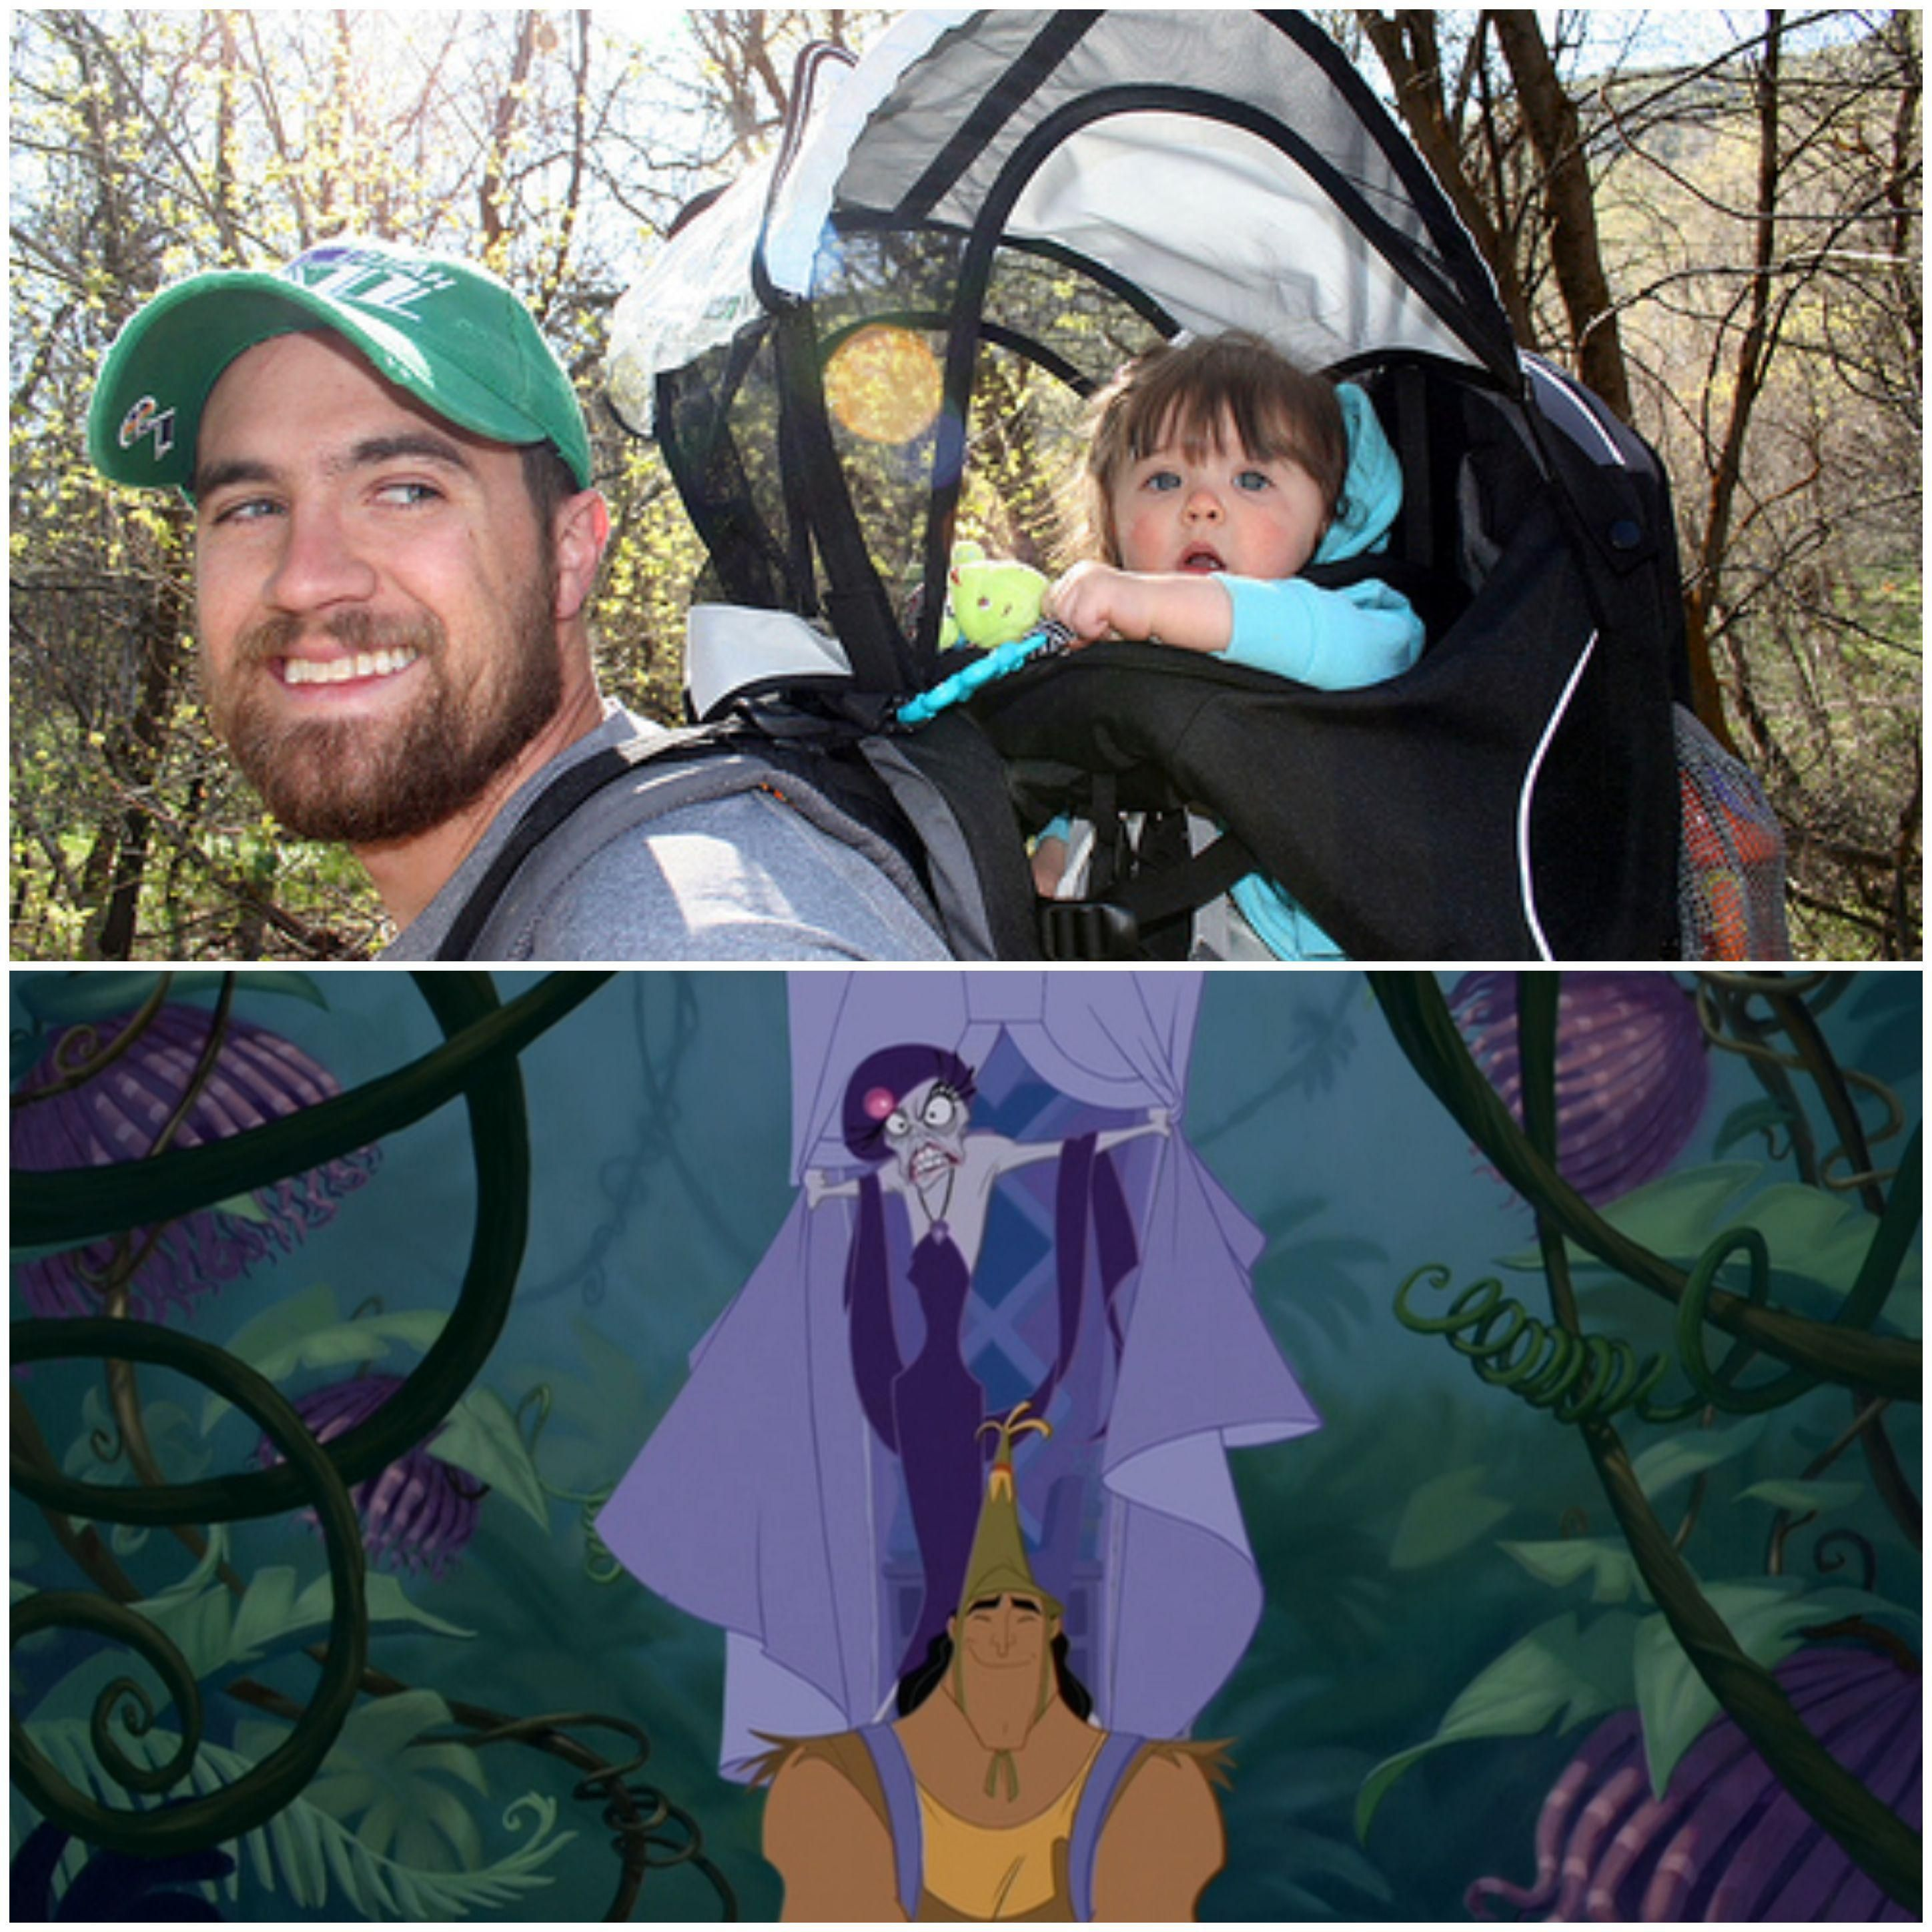 Seeing these baby carriers while hiking lately always brings to mind...